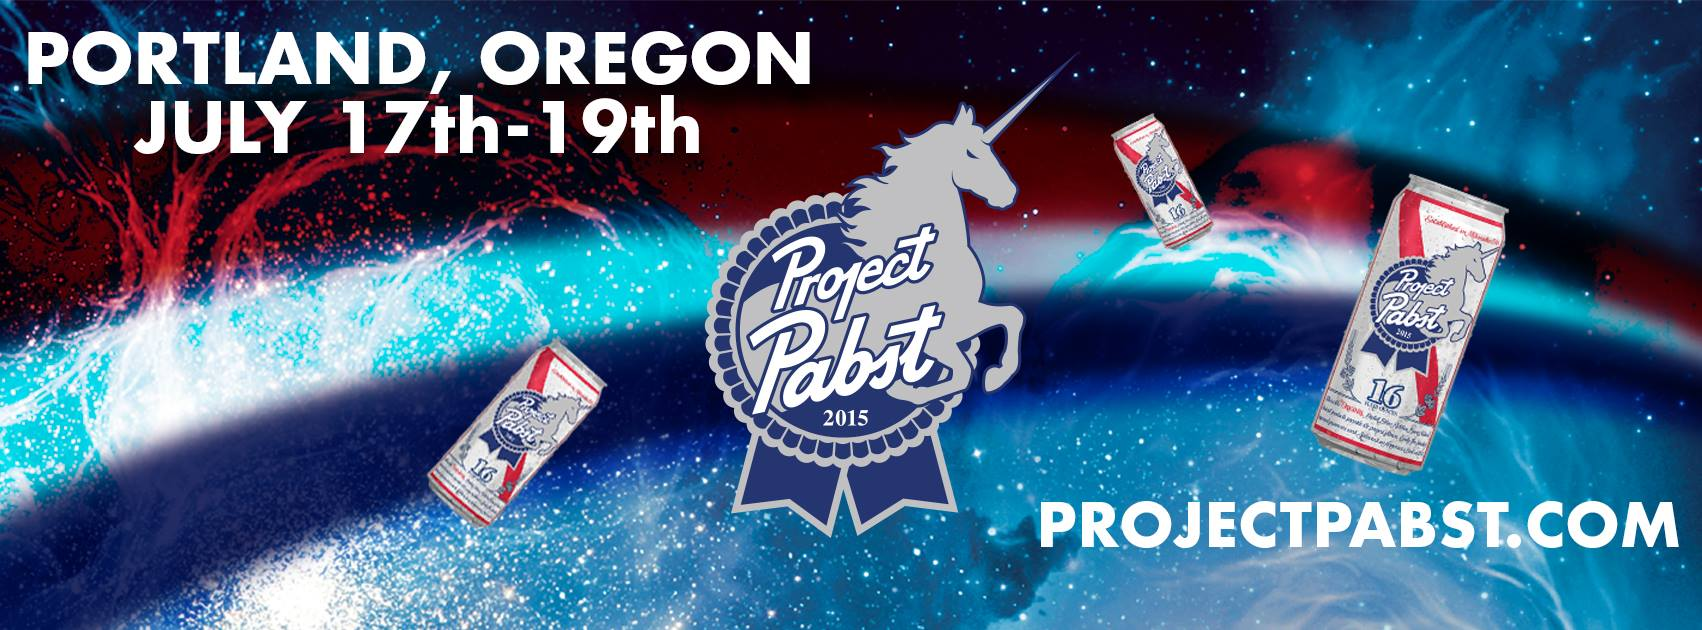 2015 Project Pabst Header Cans